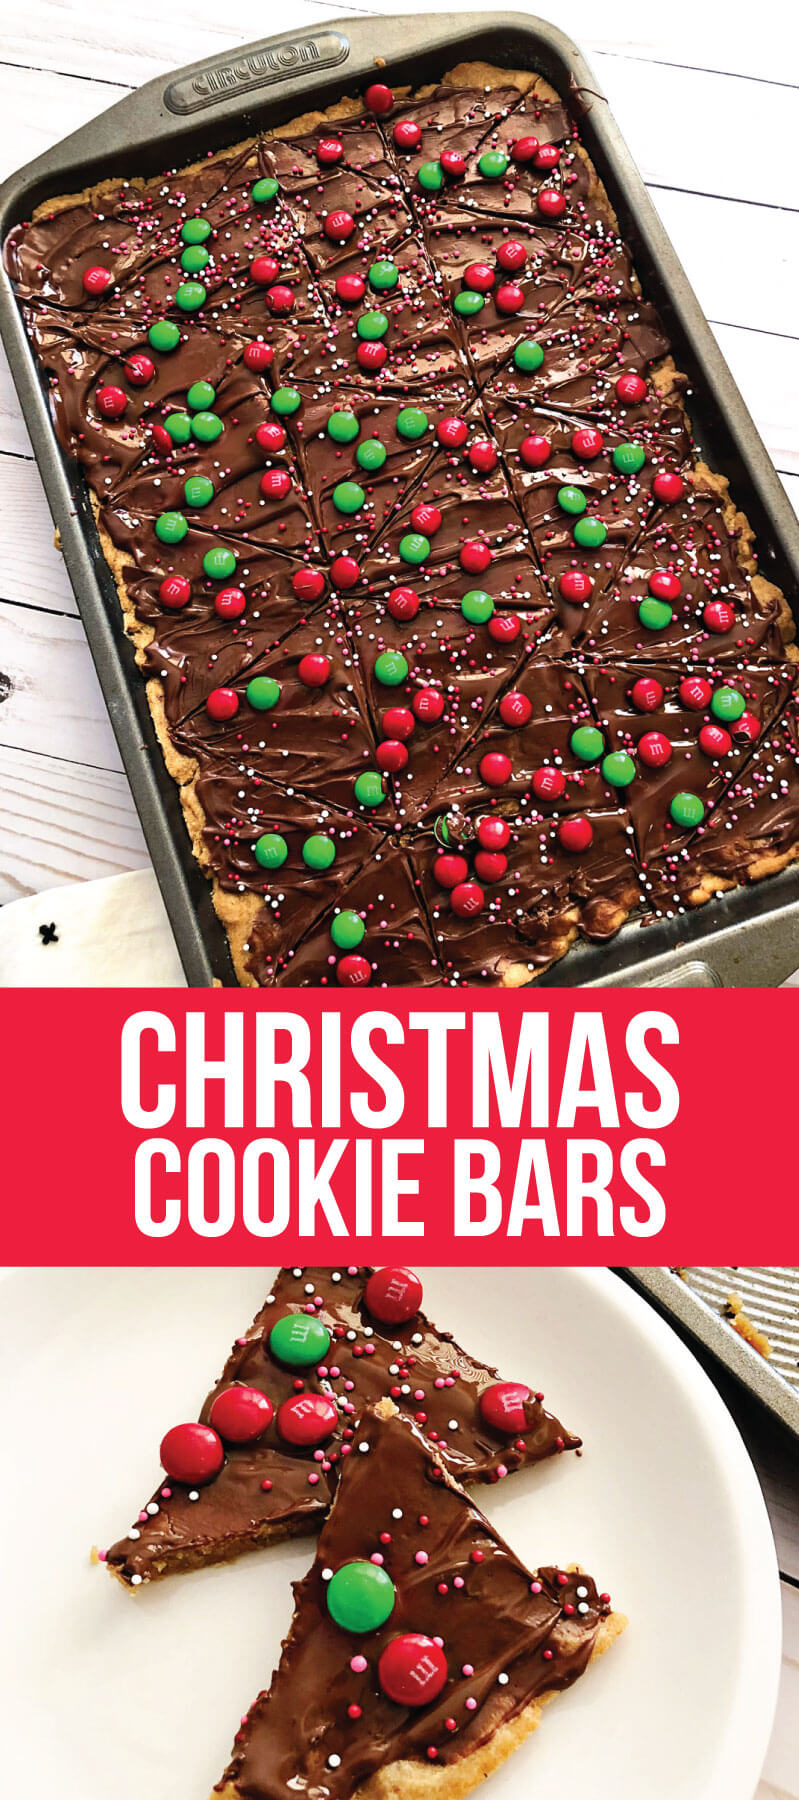 Christmas Cookie Bars - easy to make cookie bars for the holidays! from www.thirtyhandmadedays.com